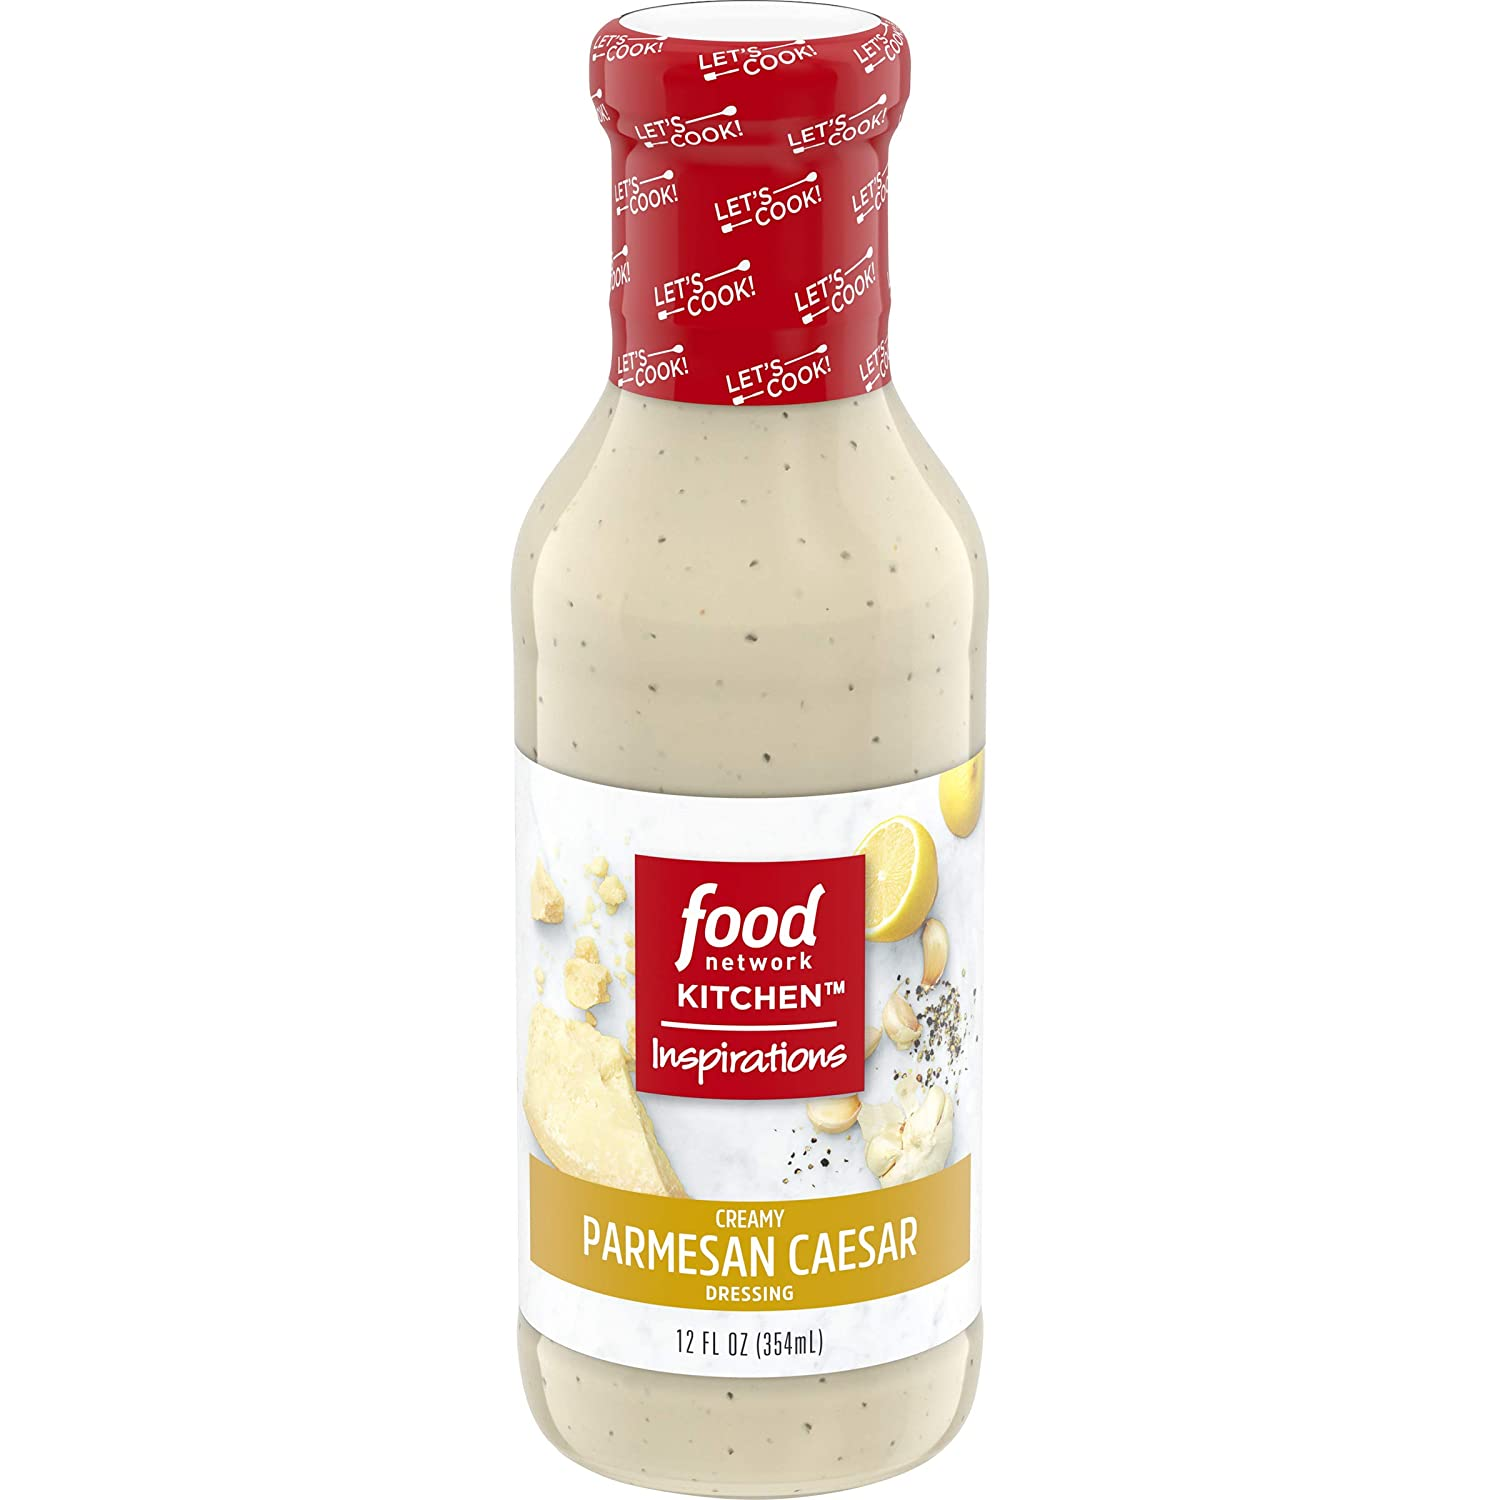 Food Network Kitchen Inspirations, Creamy Parmesan Caesar Dressing, 12 oz